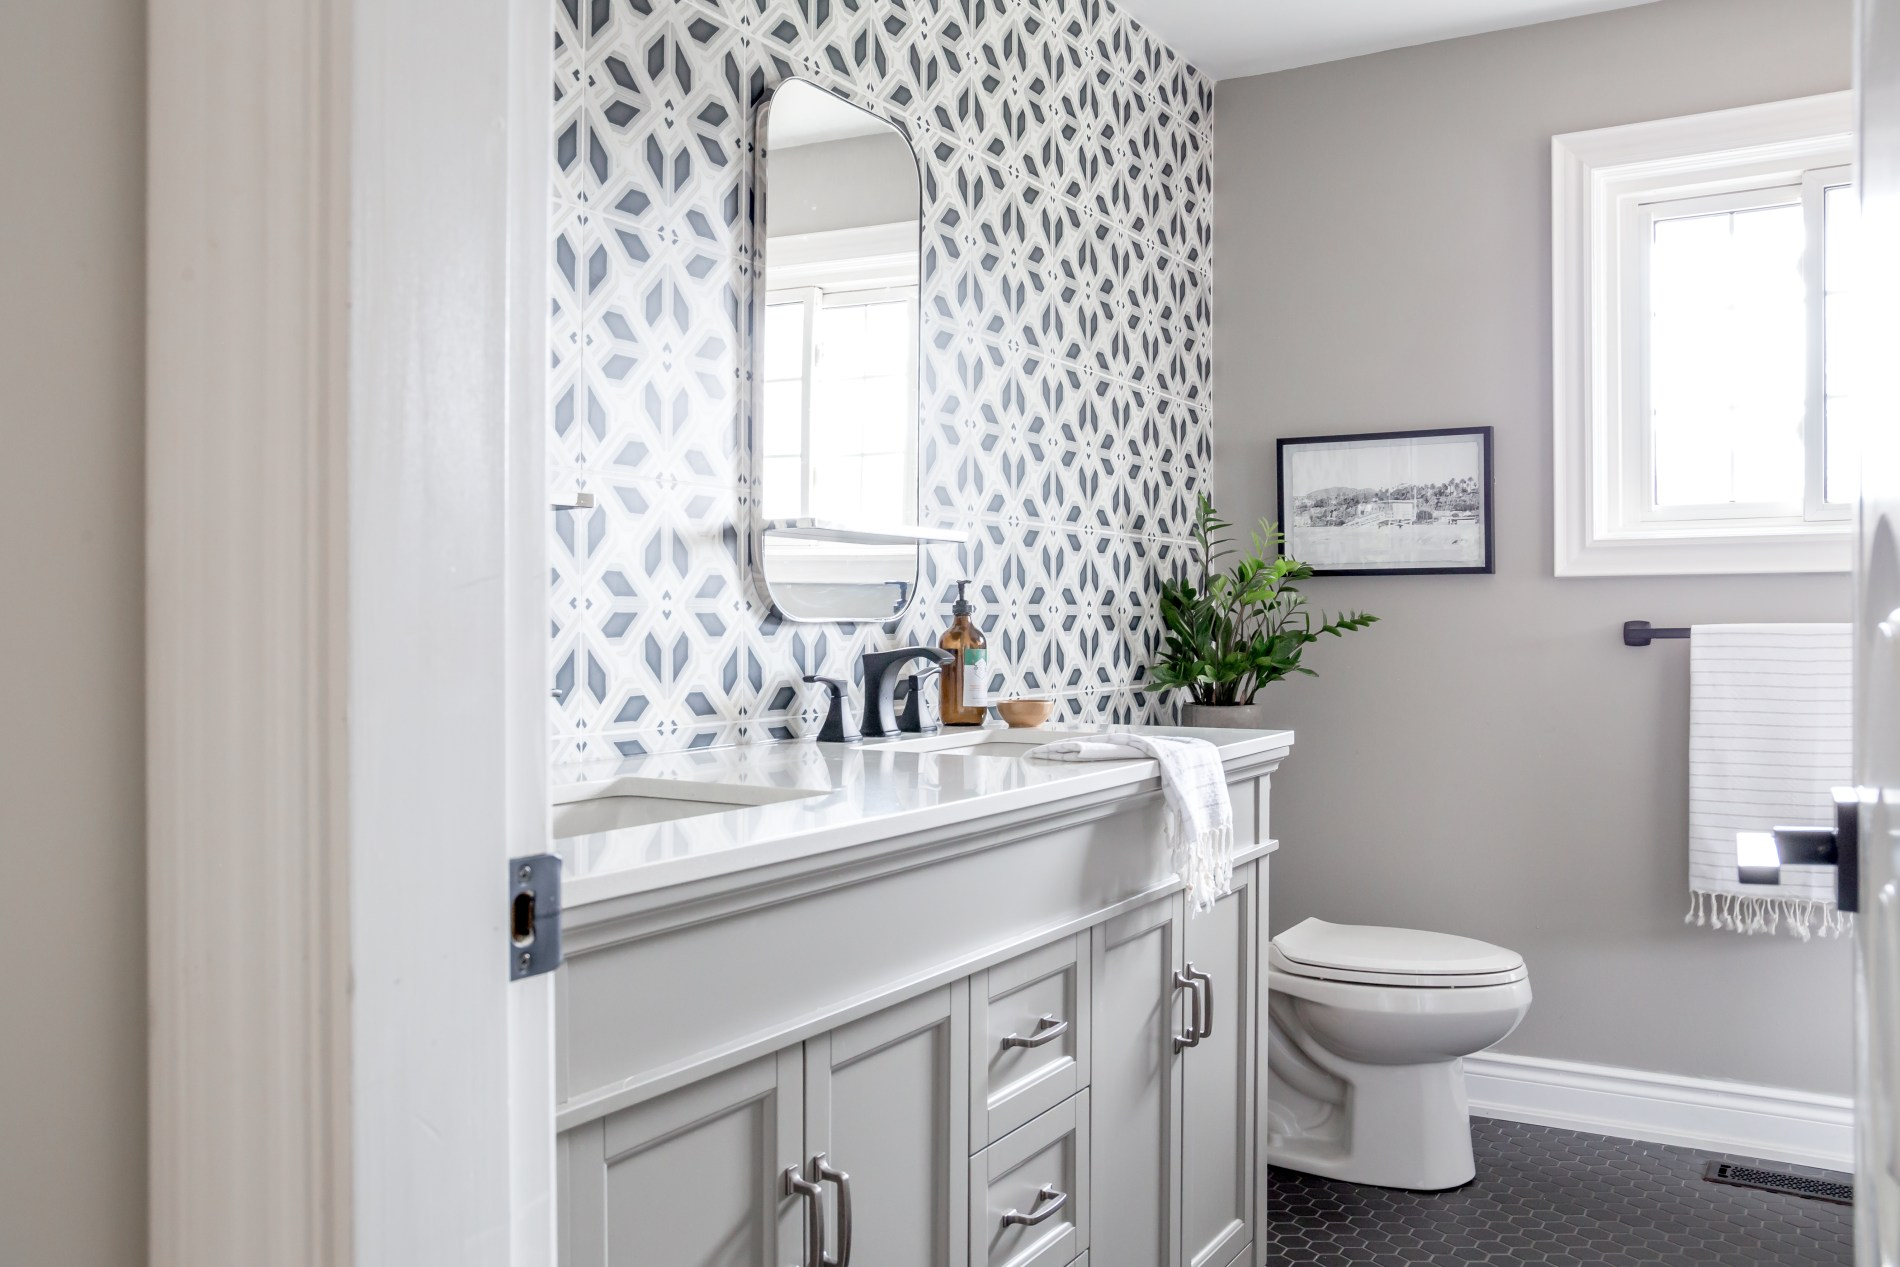 Harper Designs - Bathroom Reno